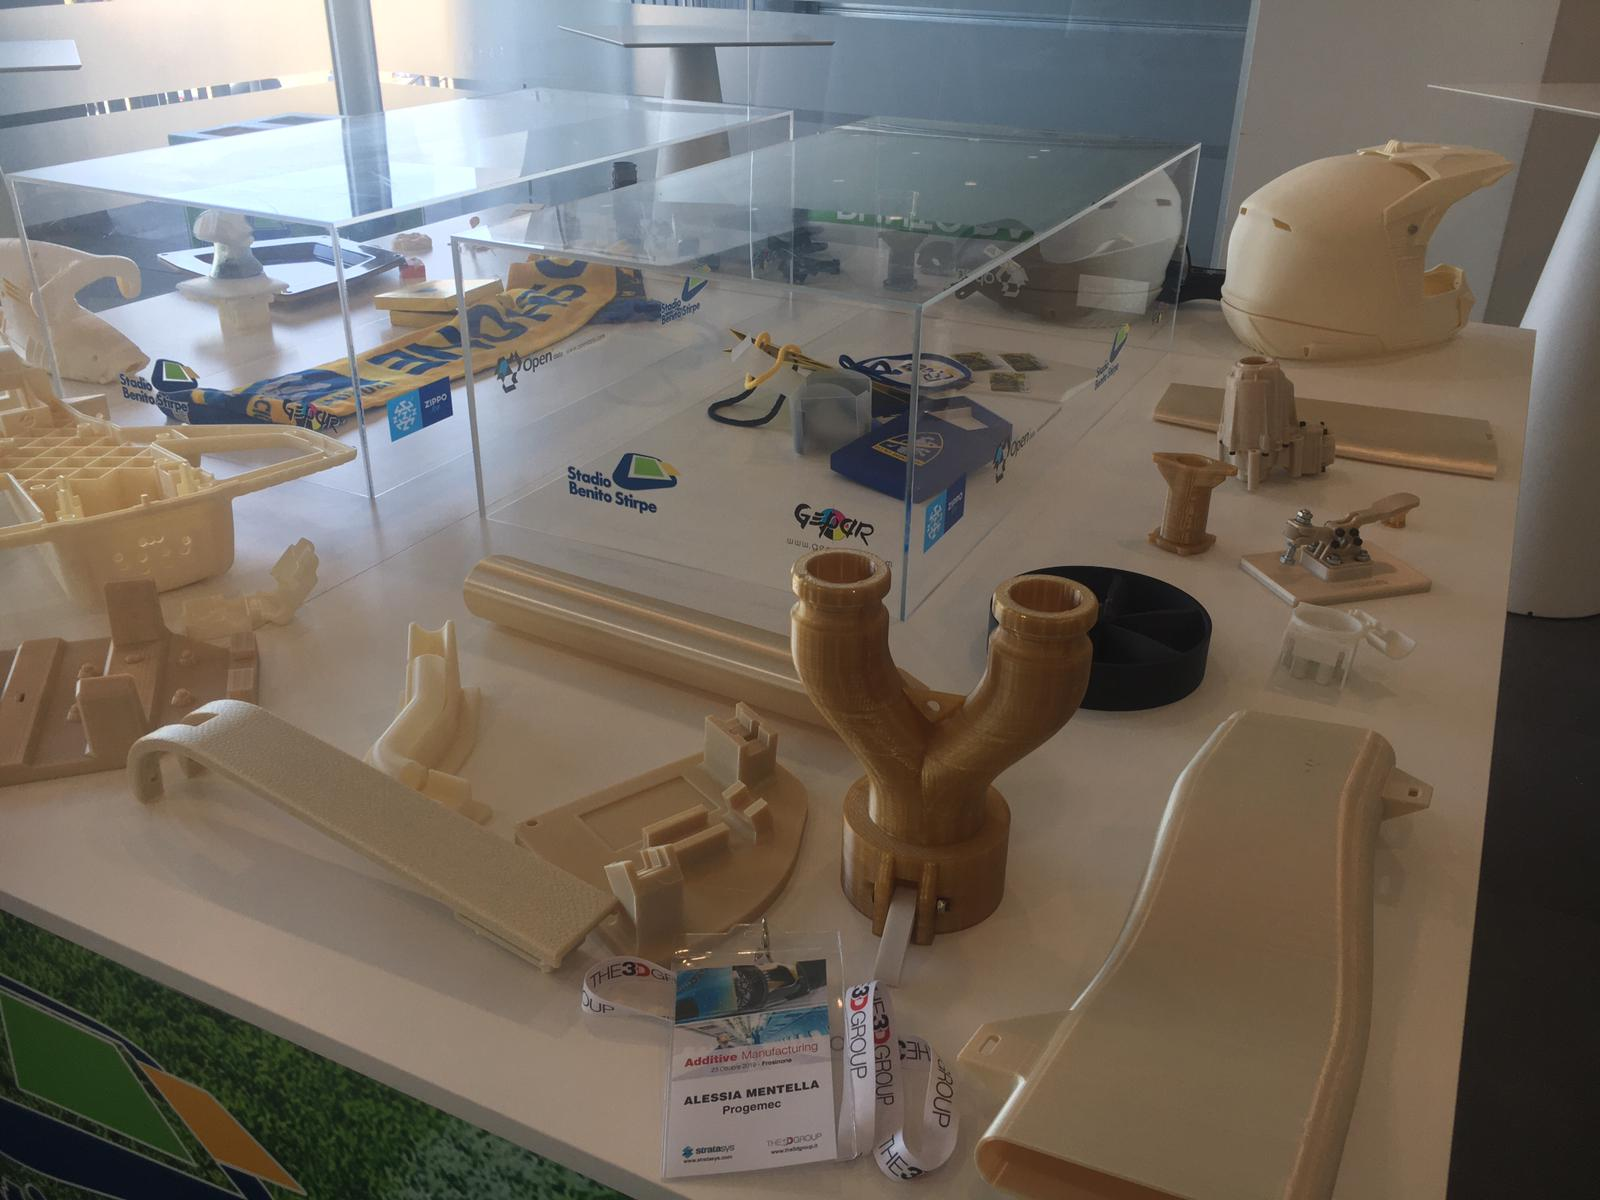 stampa 3d additive manufacturing prototipazione